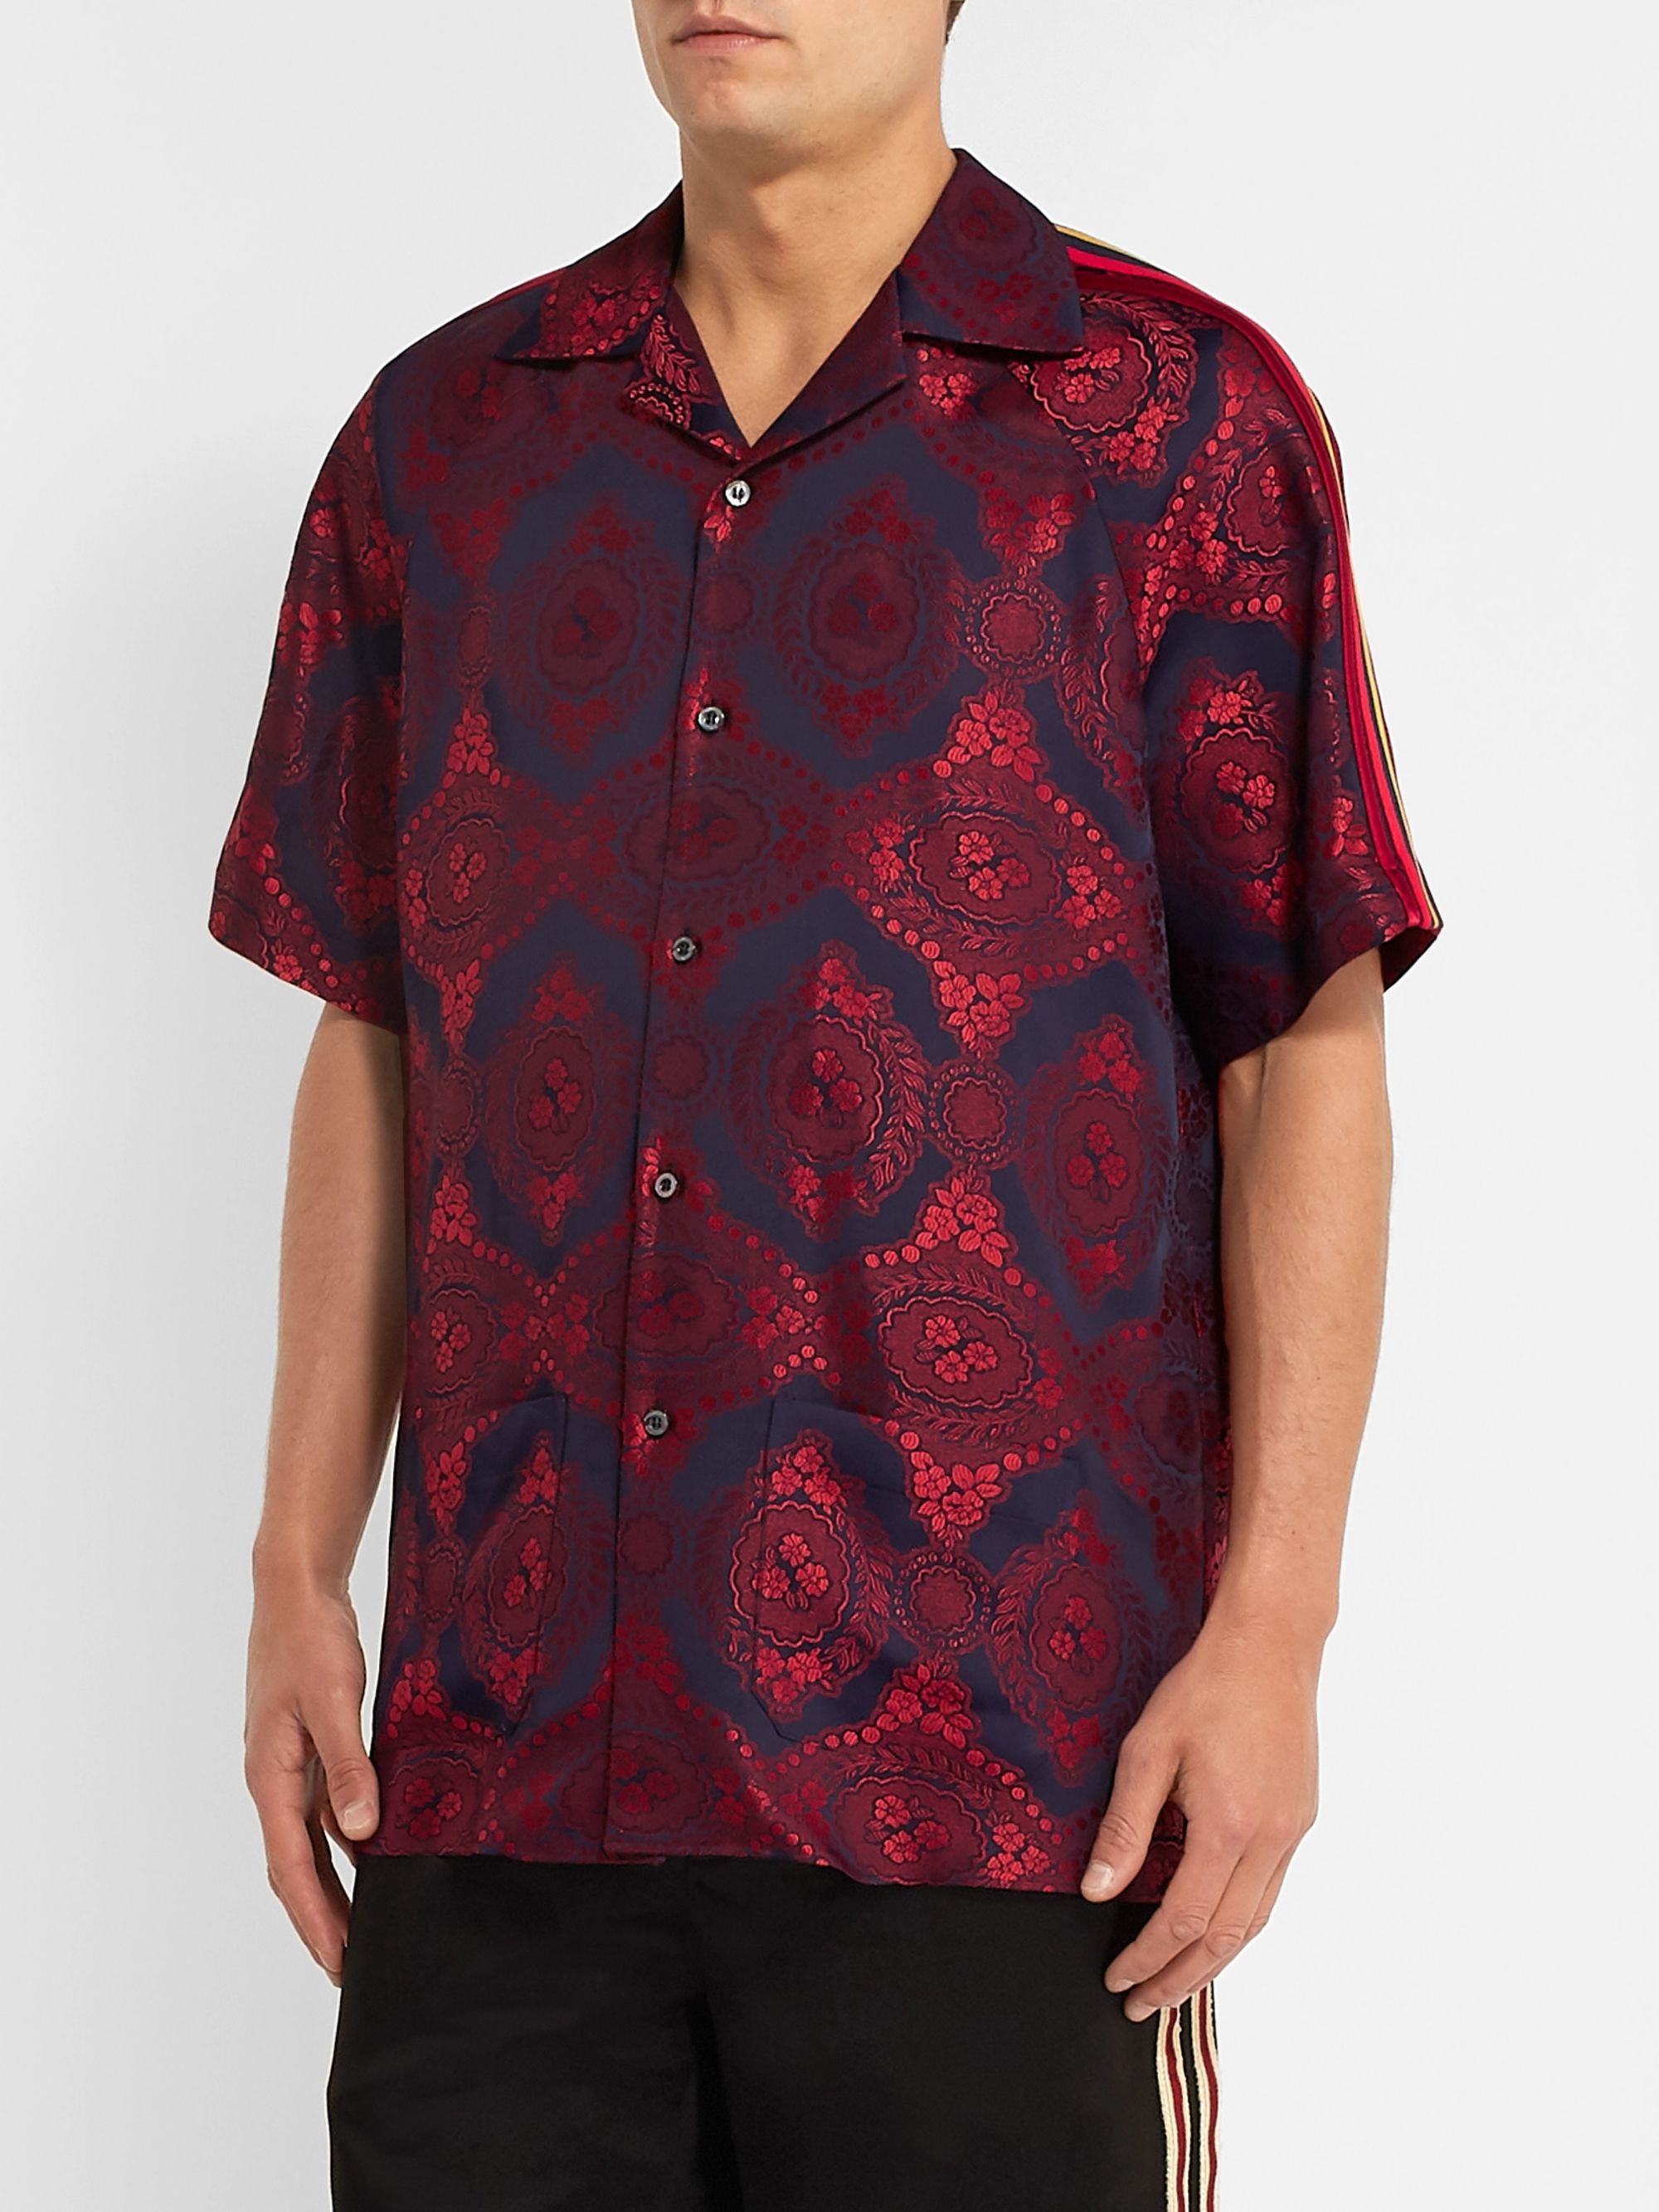 Gucci Camp-Collar Webbing-Trimmed Jacquard Shirt